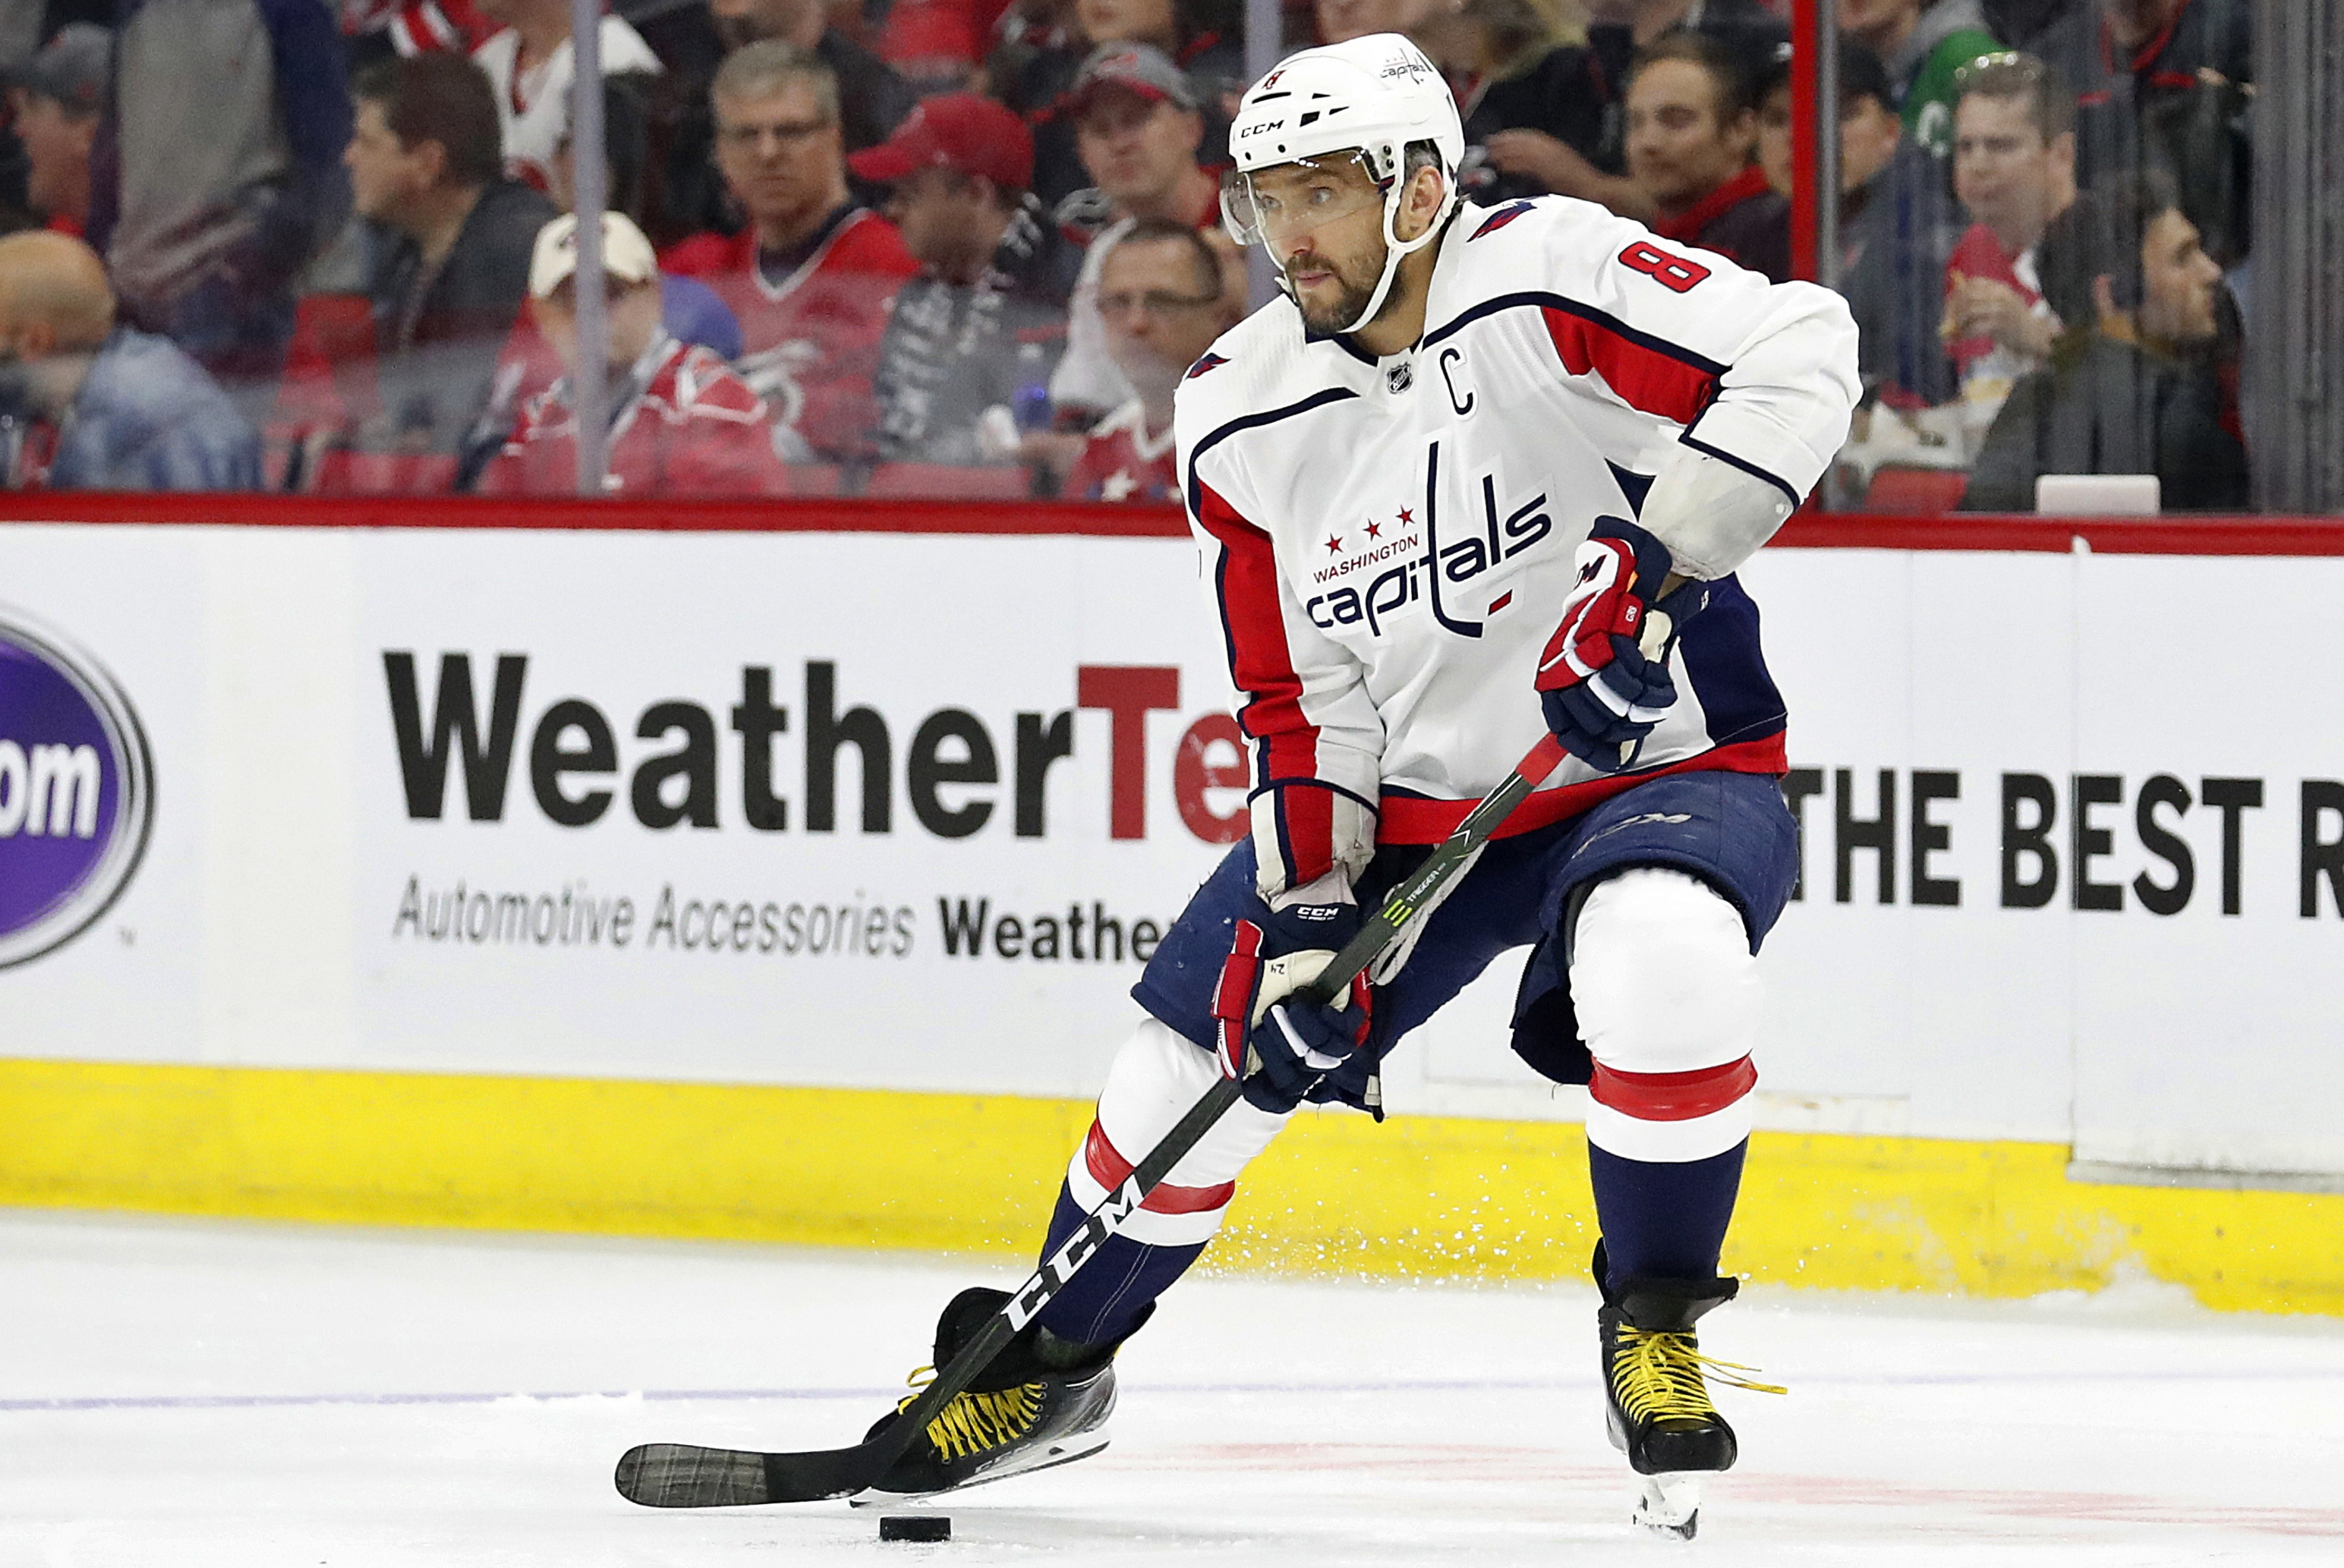 Capitals face questions about salary cap, bottom six entering season